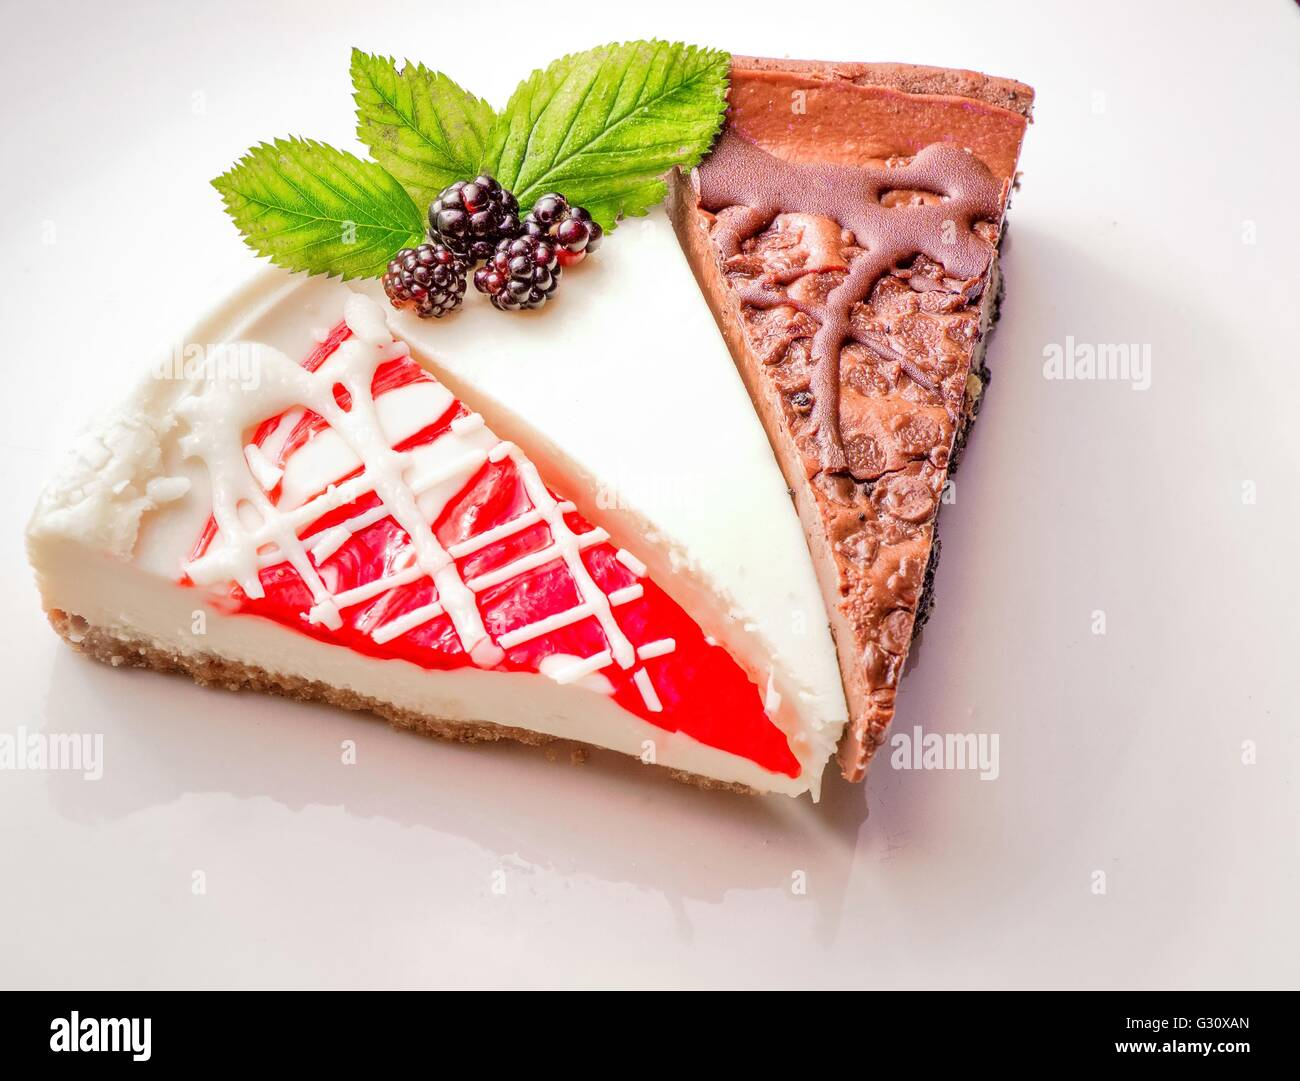 Cheesecake Sampler. Three slices of fresh cheesecake including chocolate, plain and strawberry, - Stock Image